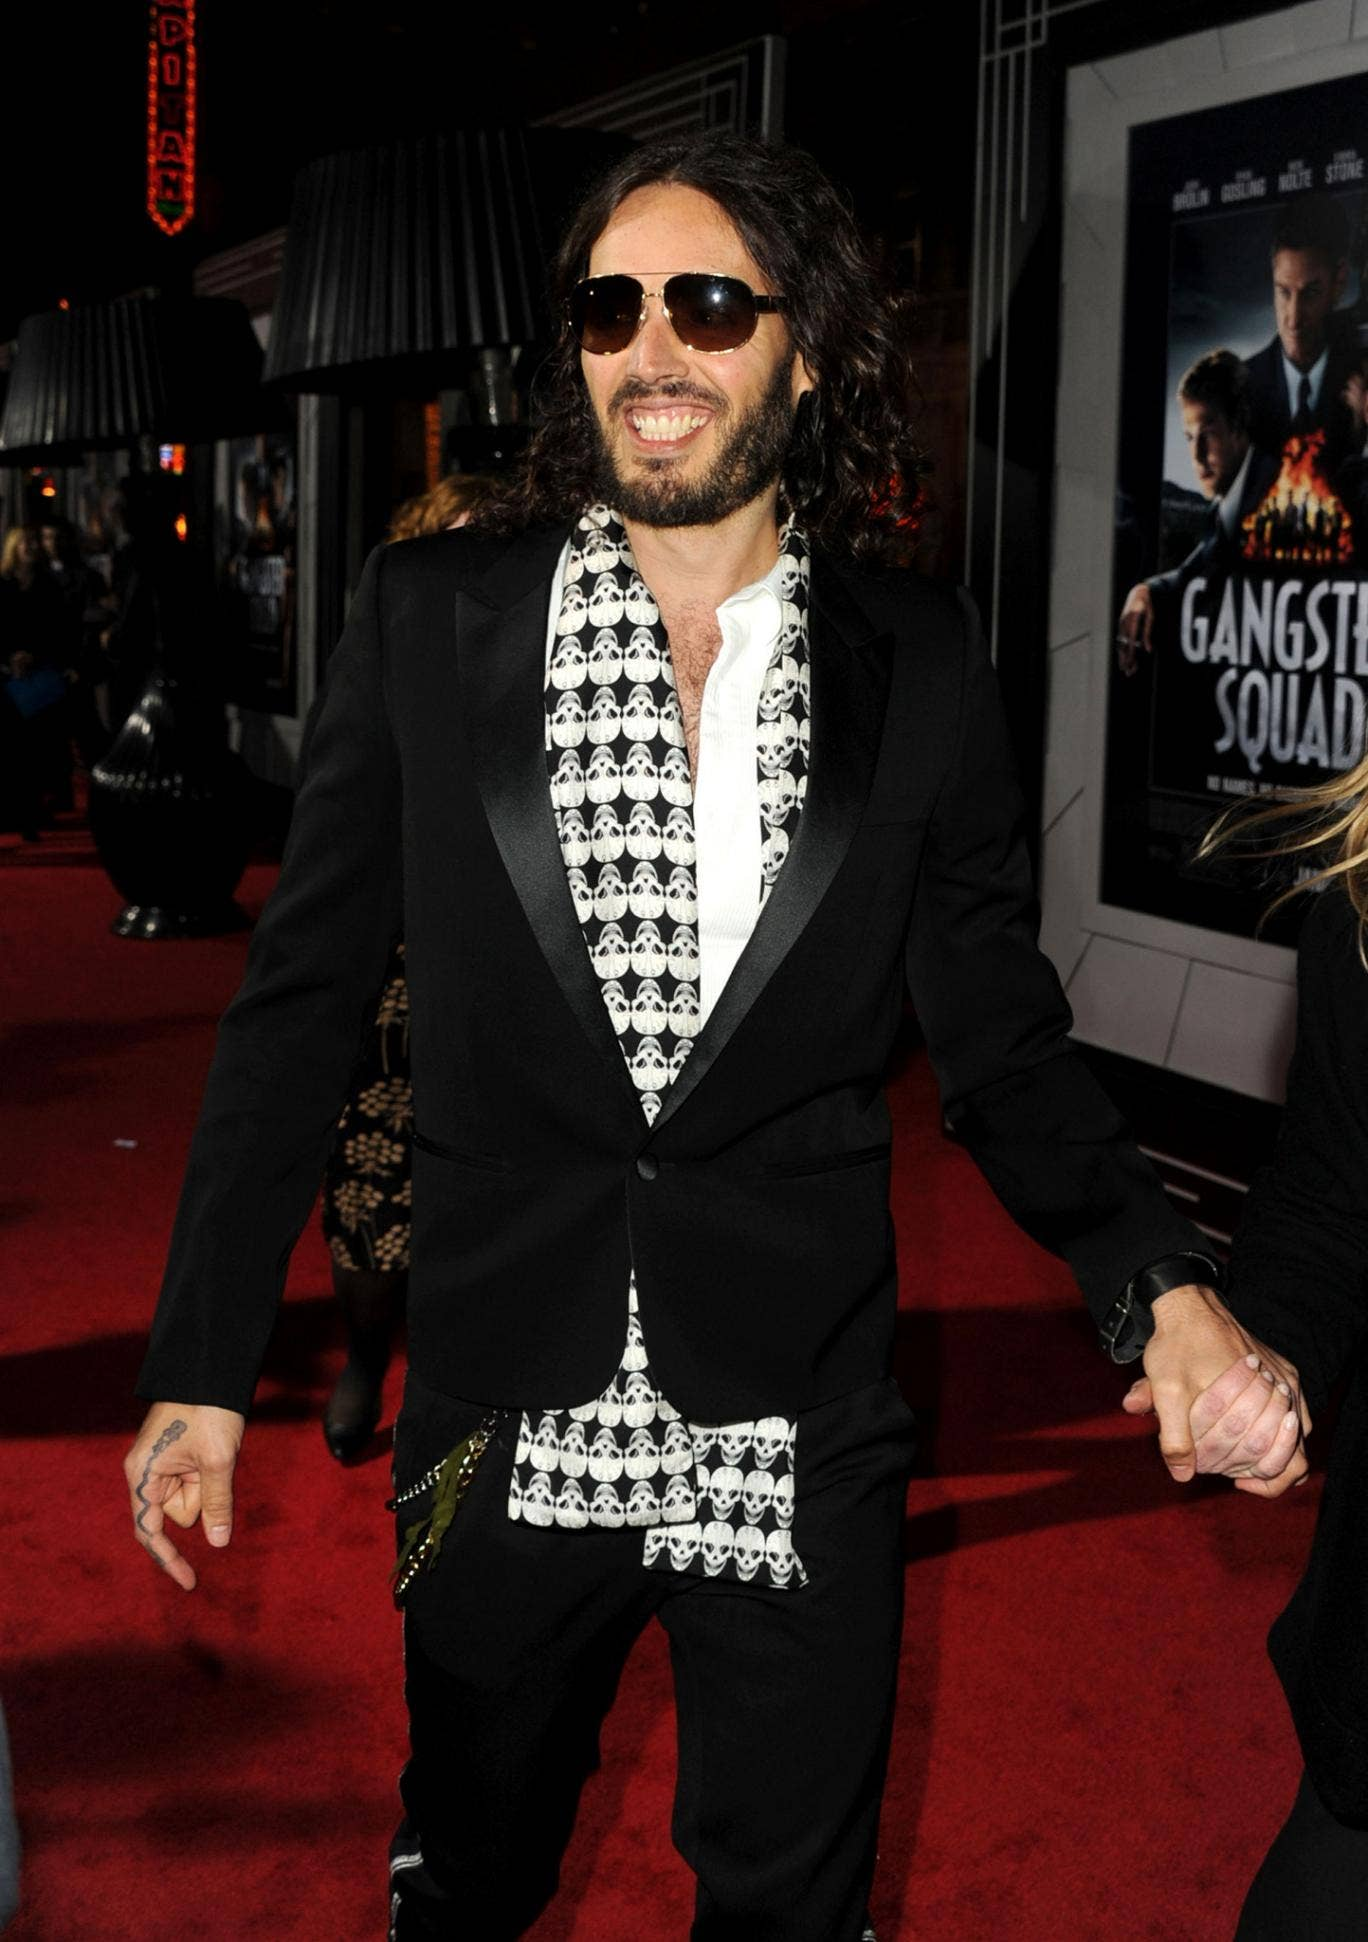 Russell Brand gives his best Doctor Who impression in a scarf and dark glasses at a recent film premiere.